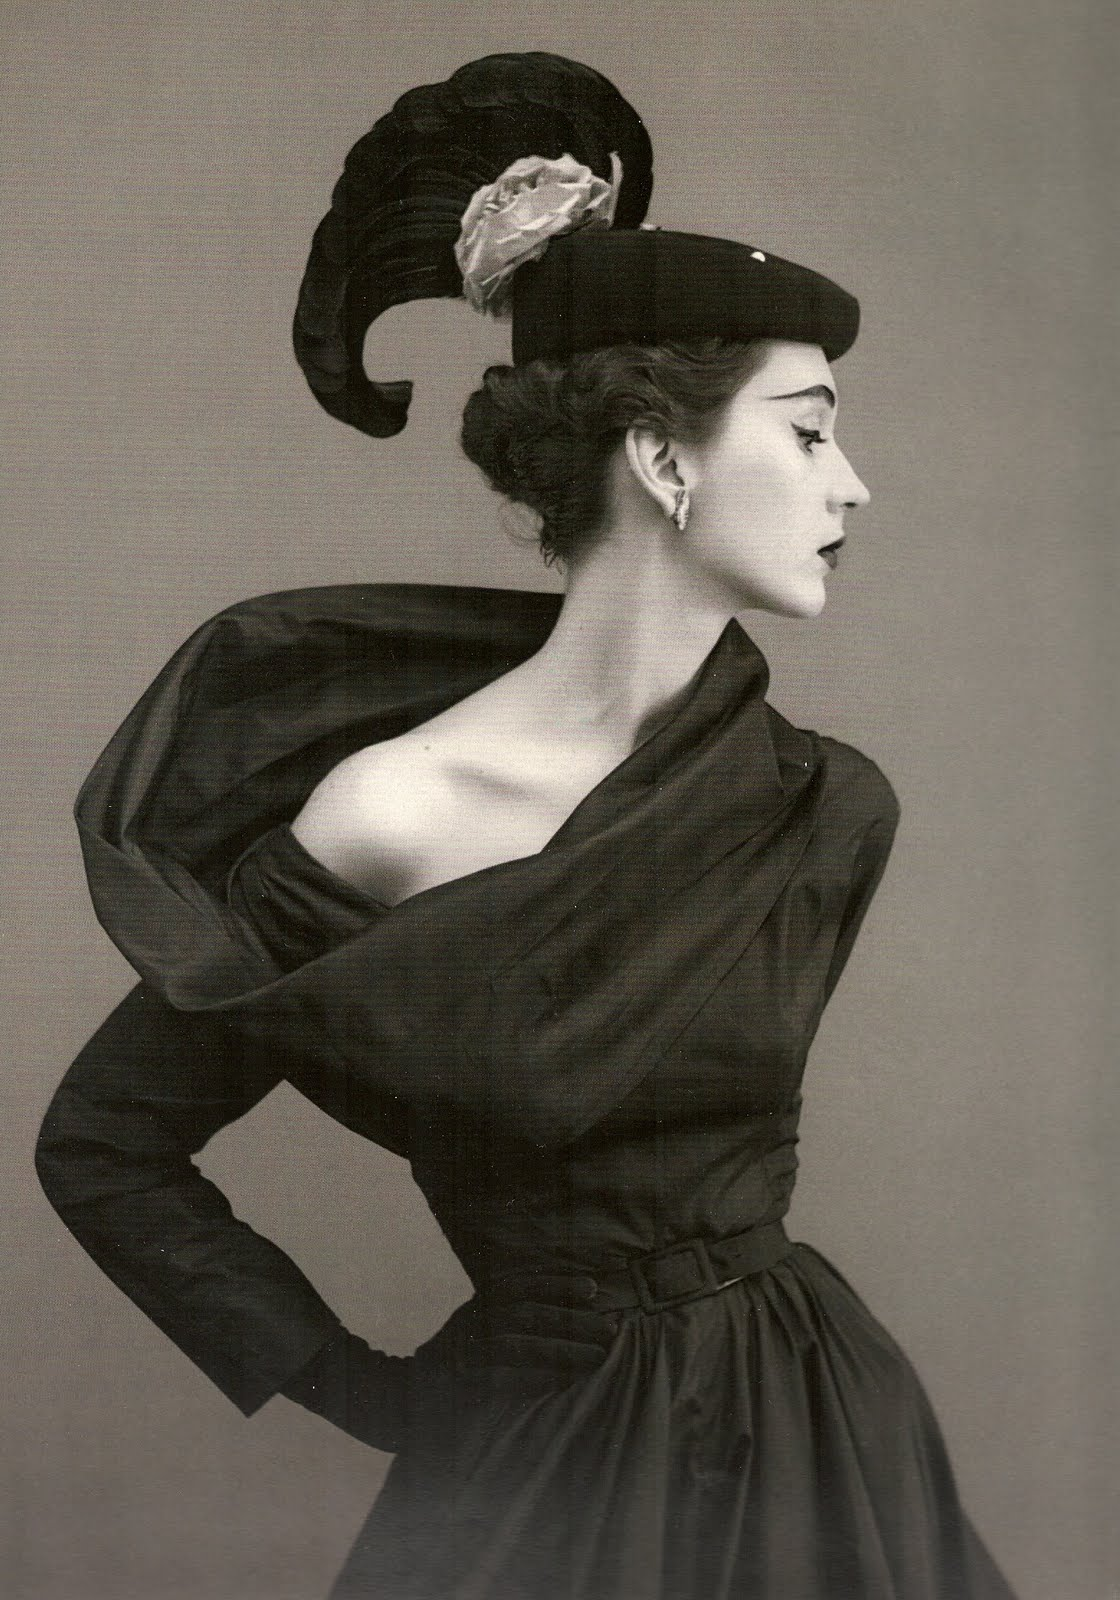 1950s Fashion - The Fashion eZine